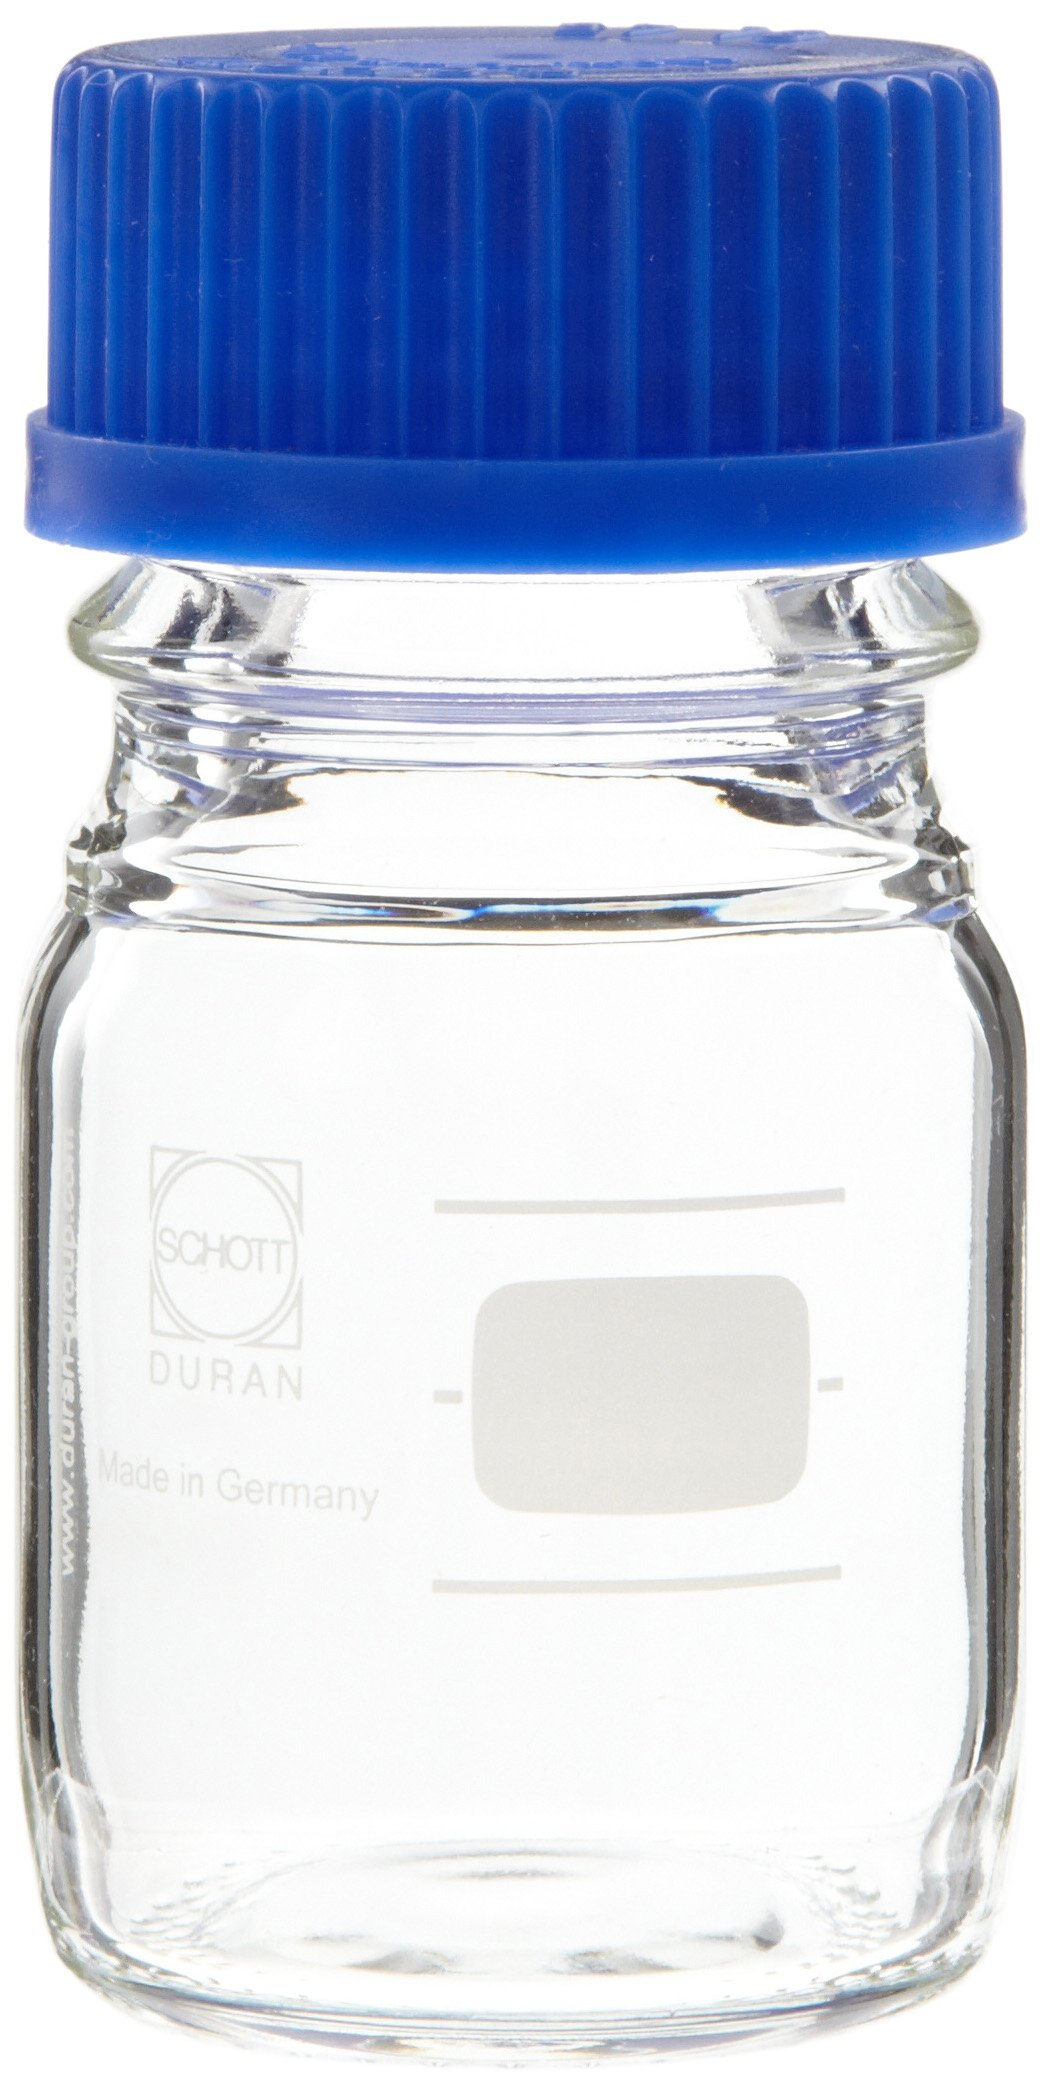 Chemglass CLS-1172-50 Glass 50mL Schott Media Storage Bottle, with Blue Cap and GL-45 GPI Thread (Case of 10)